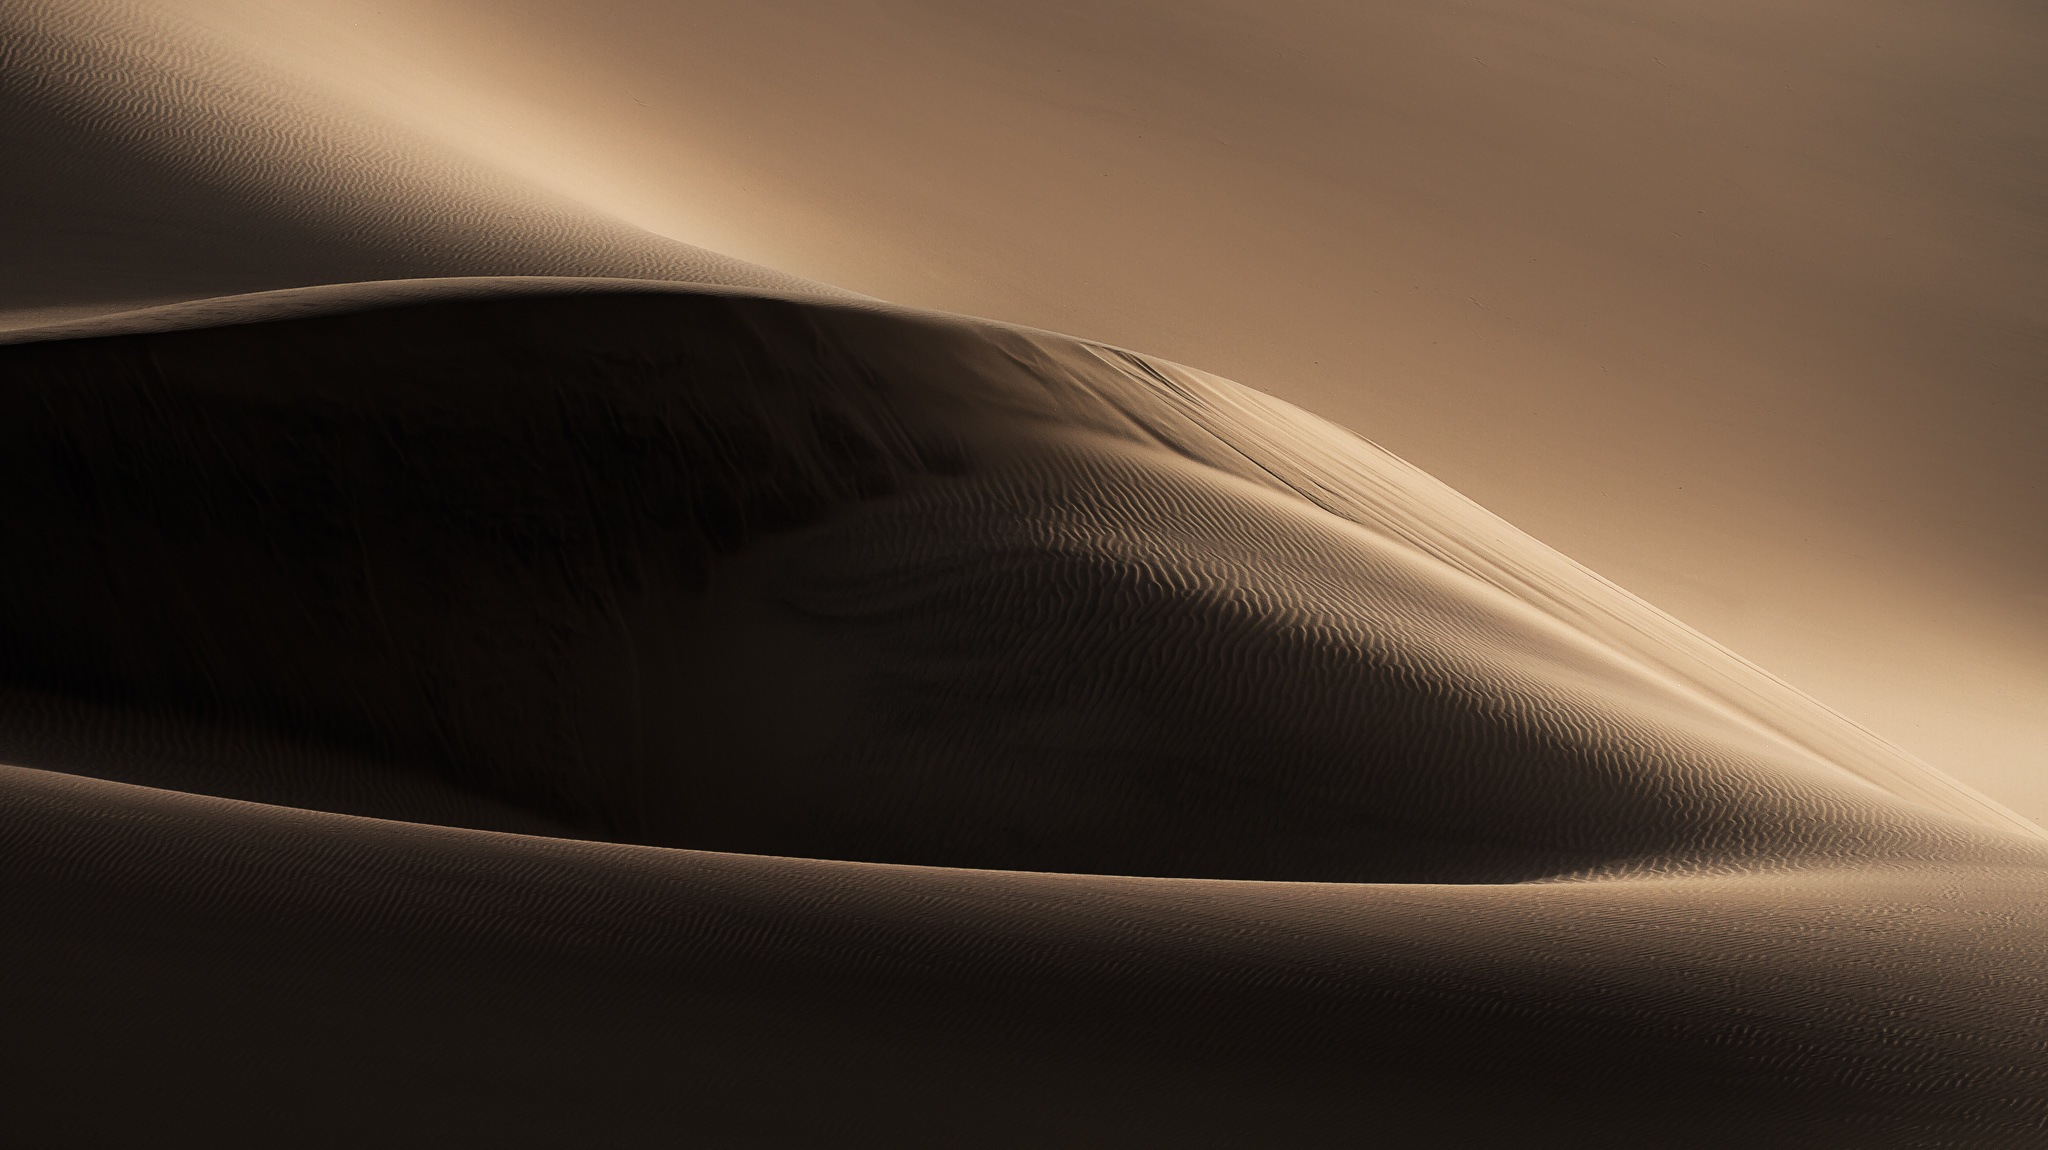 Dunescape by Xenia